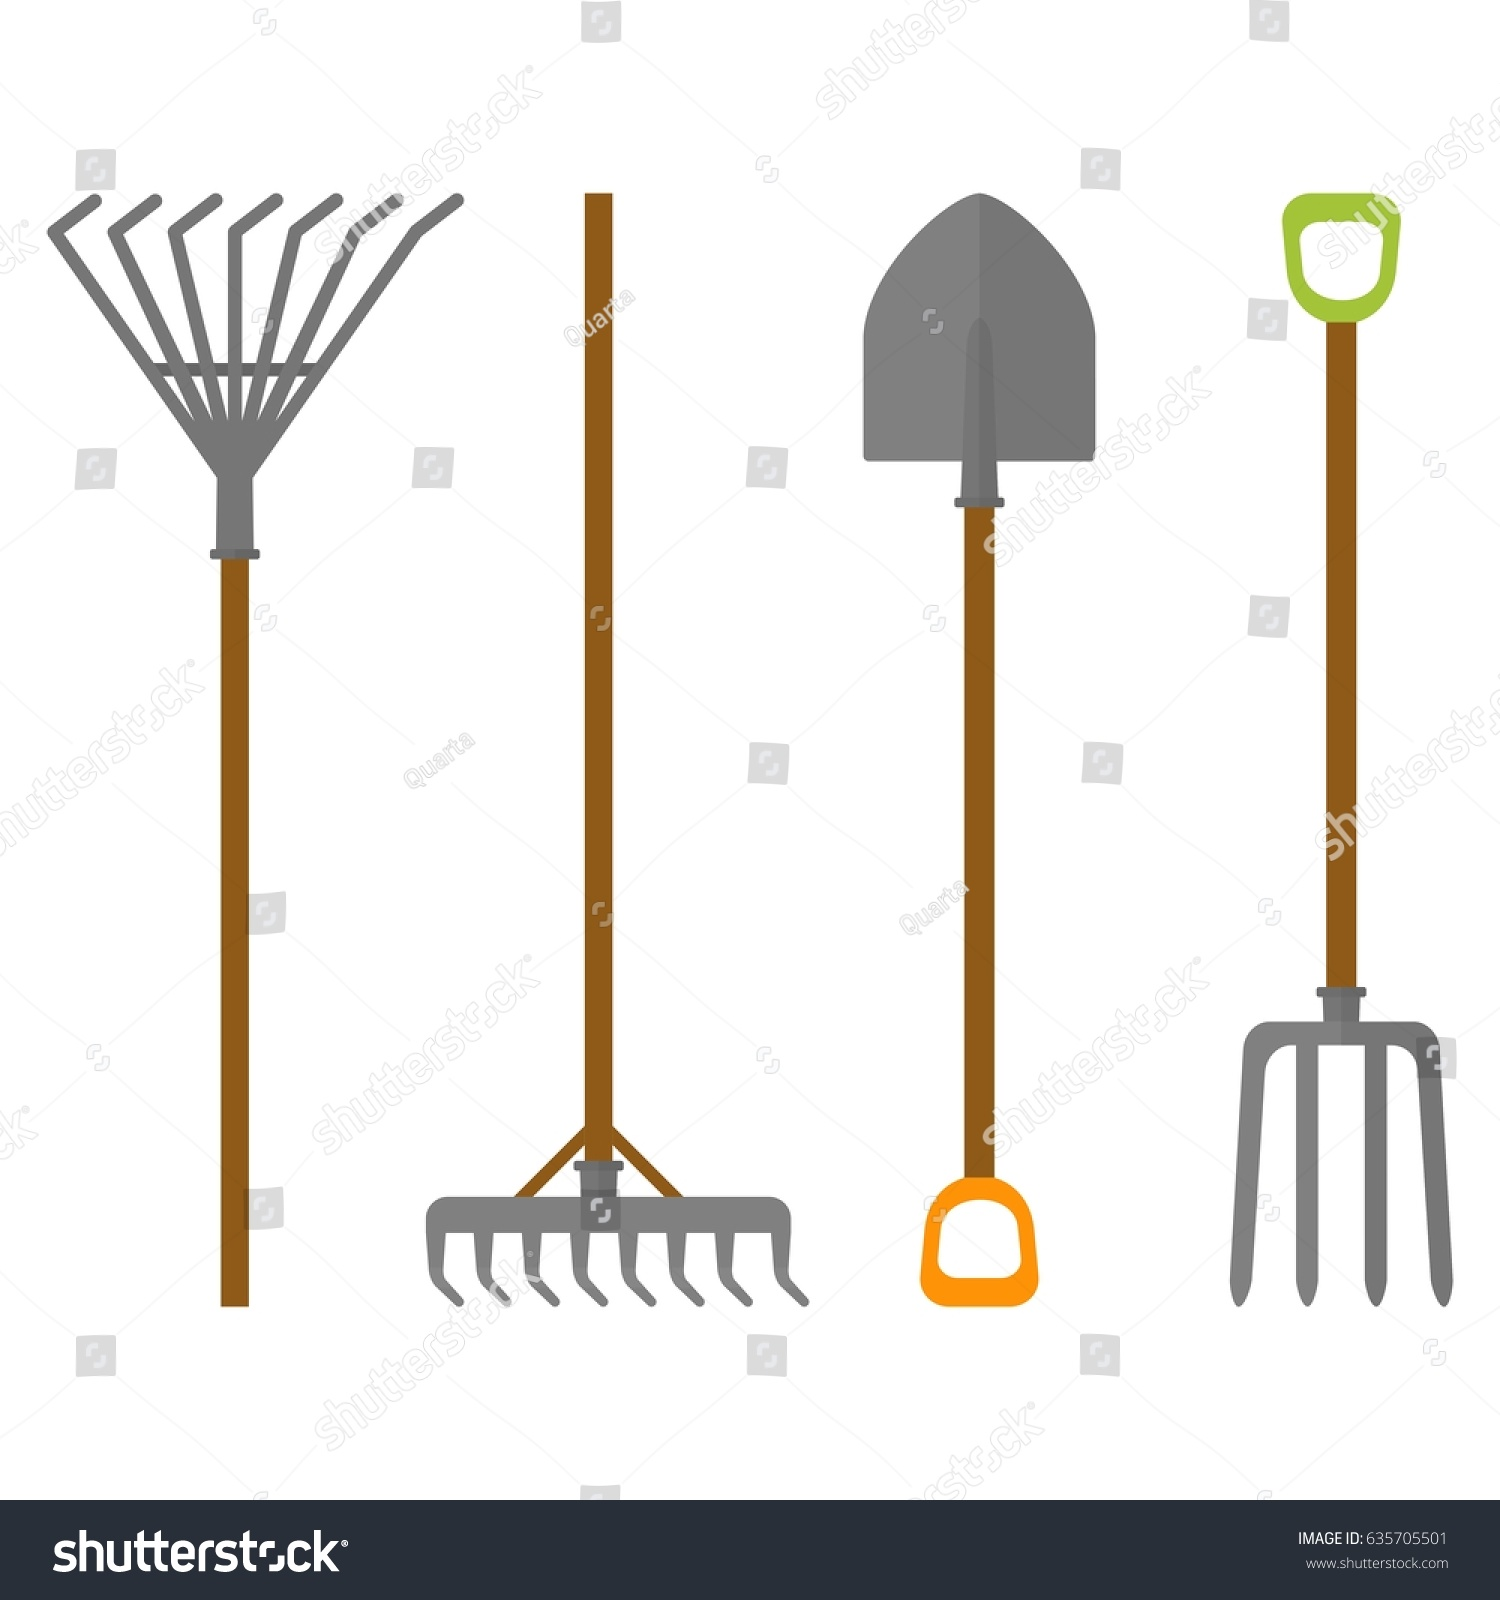 Set garden tools working garden farm stock vector for Gardening tools cartoon